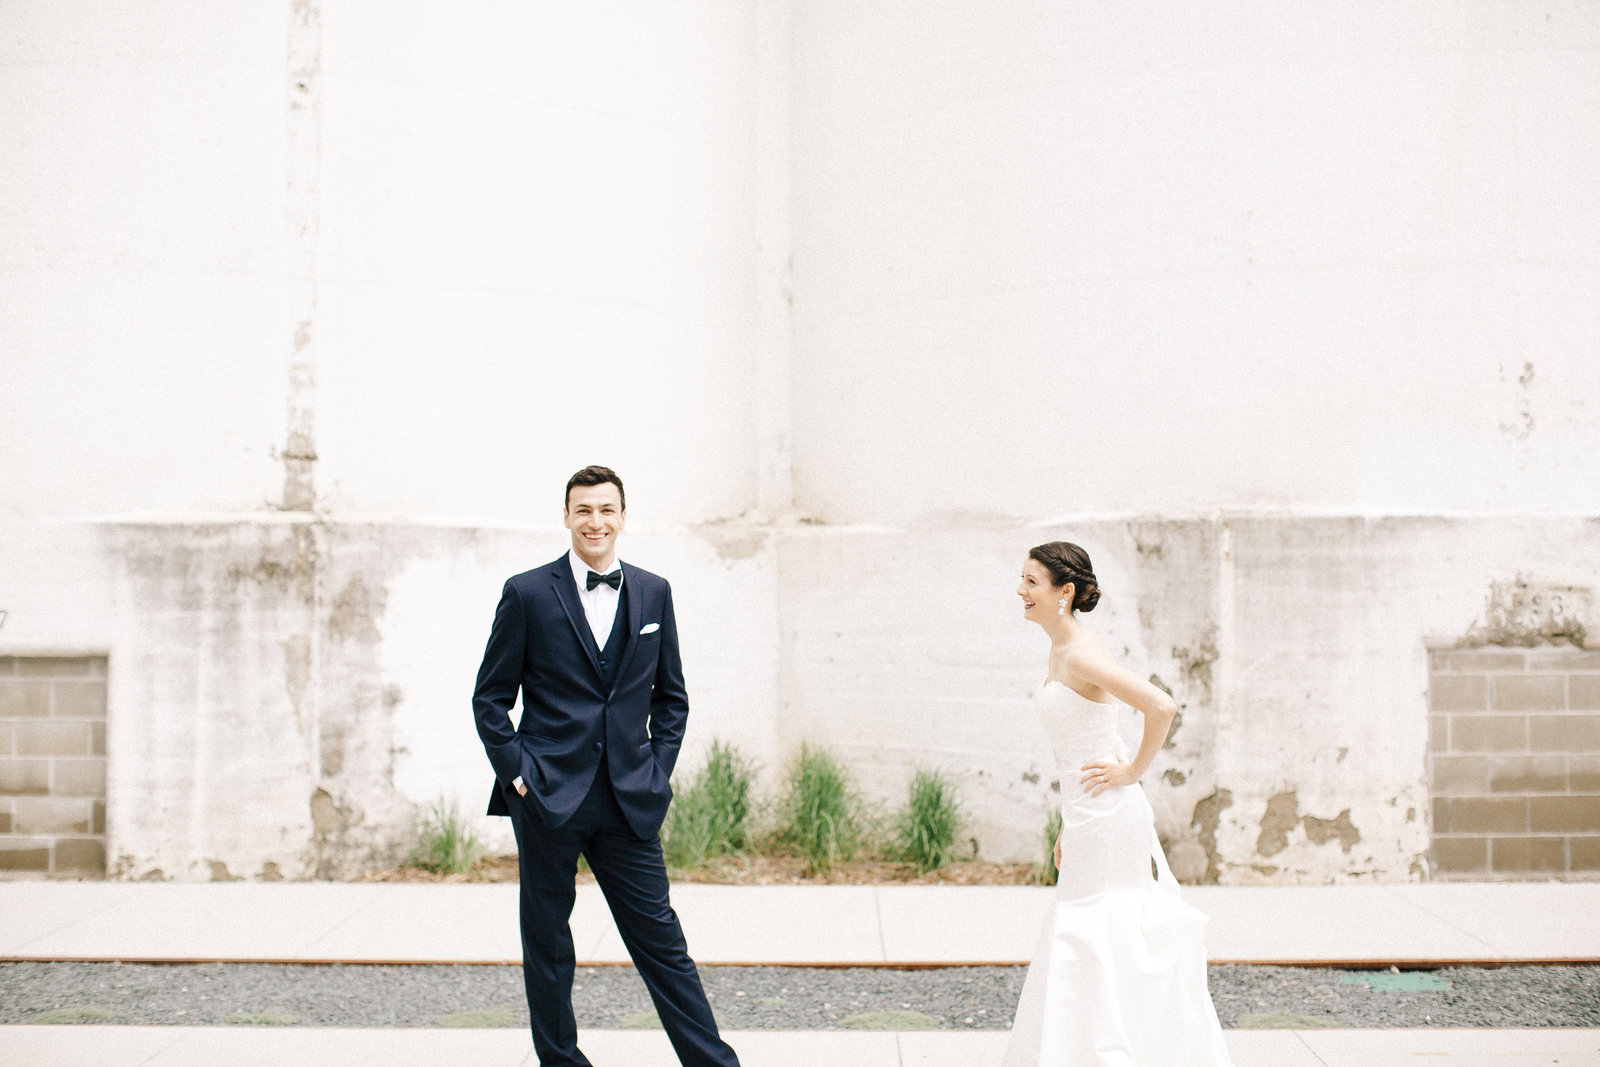 mackenzie-orth-twin-cities-minnesota-wedding-photographer-12